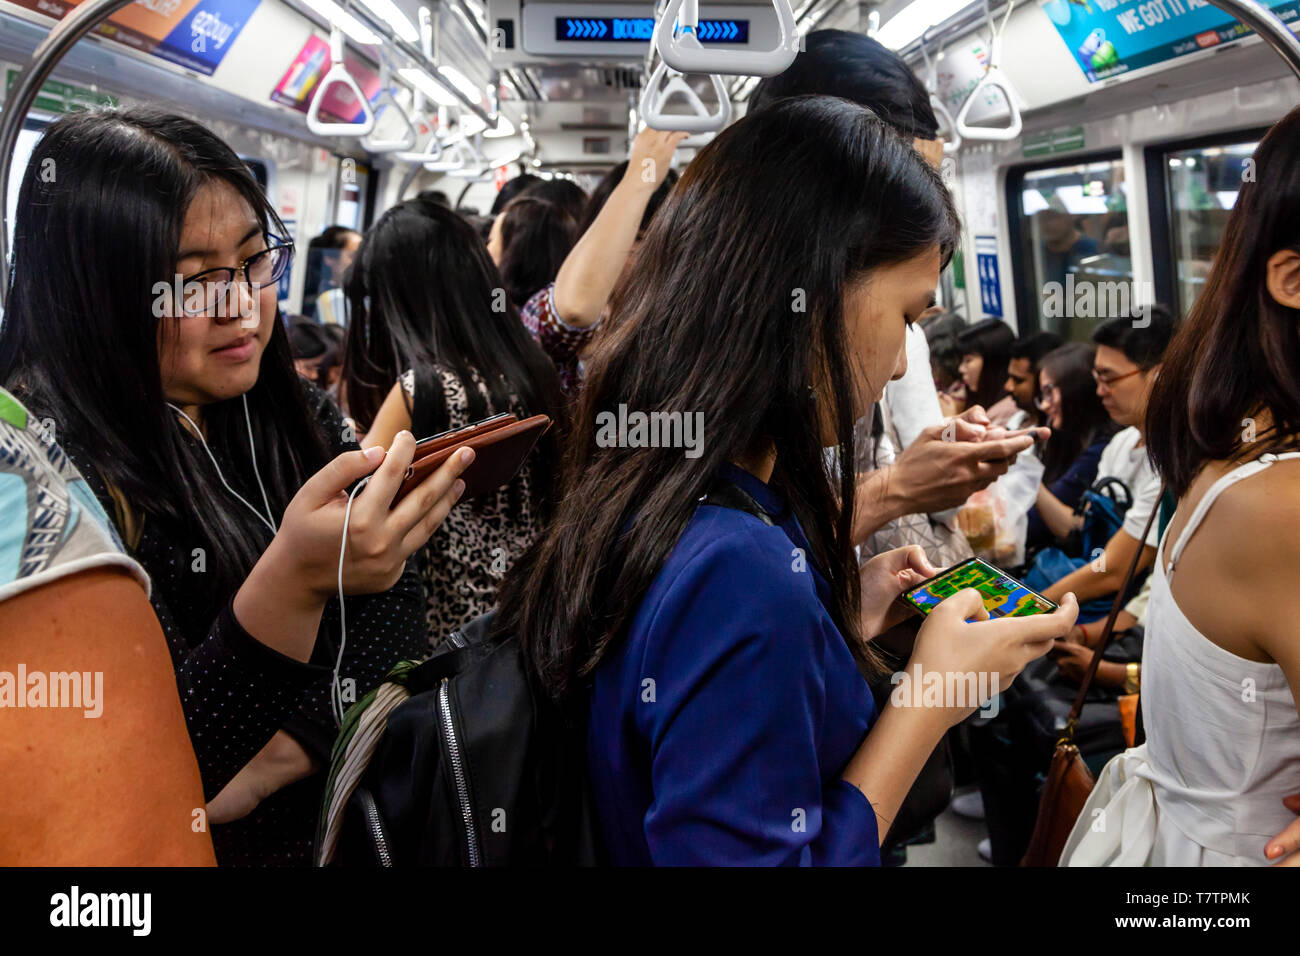 Young People Looking At Their Smartphones On The MRT, Singapore, South East Asia - Stock Image